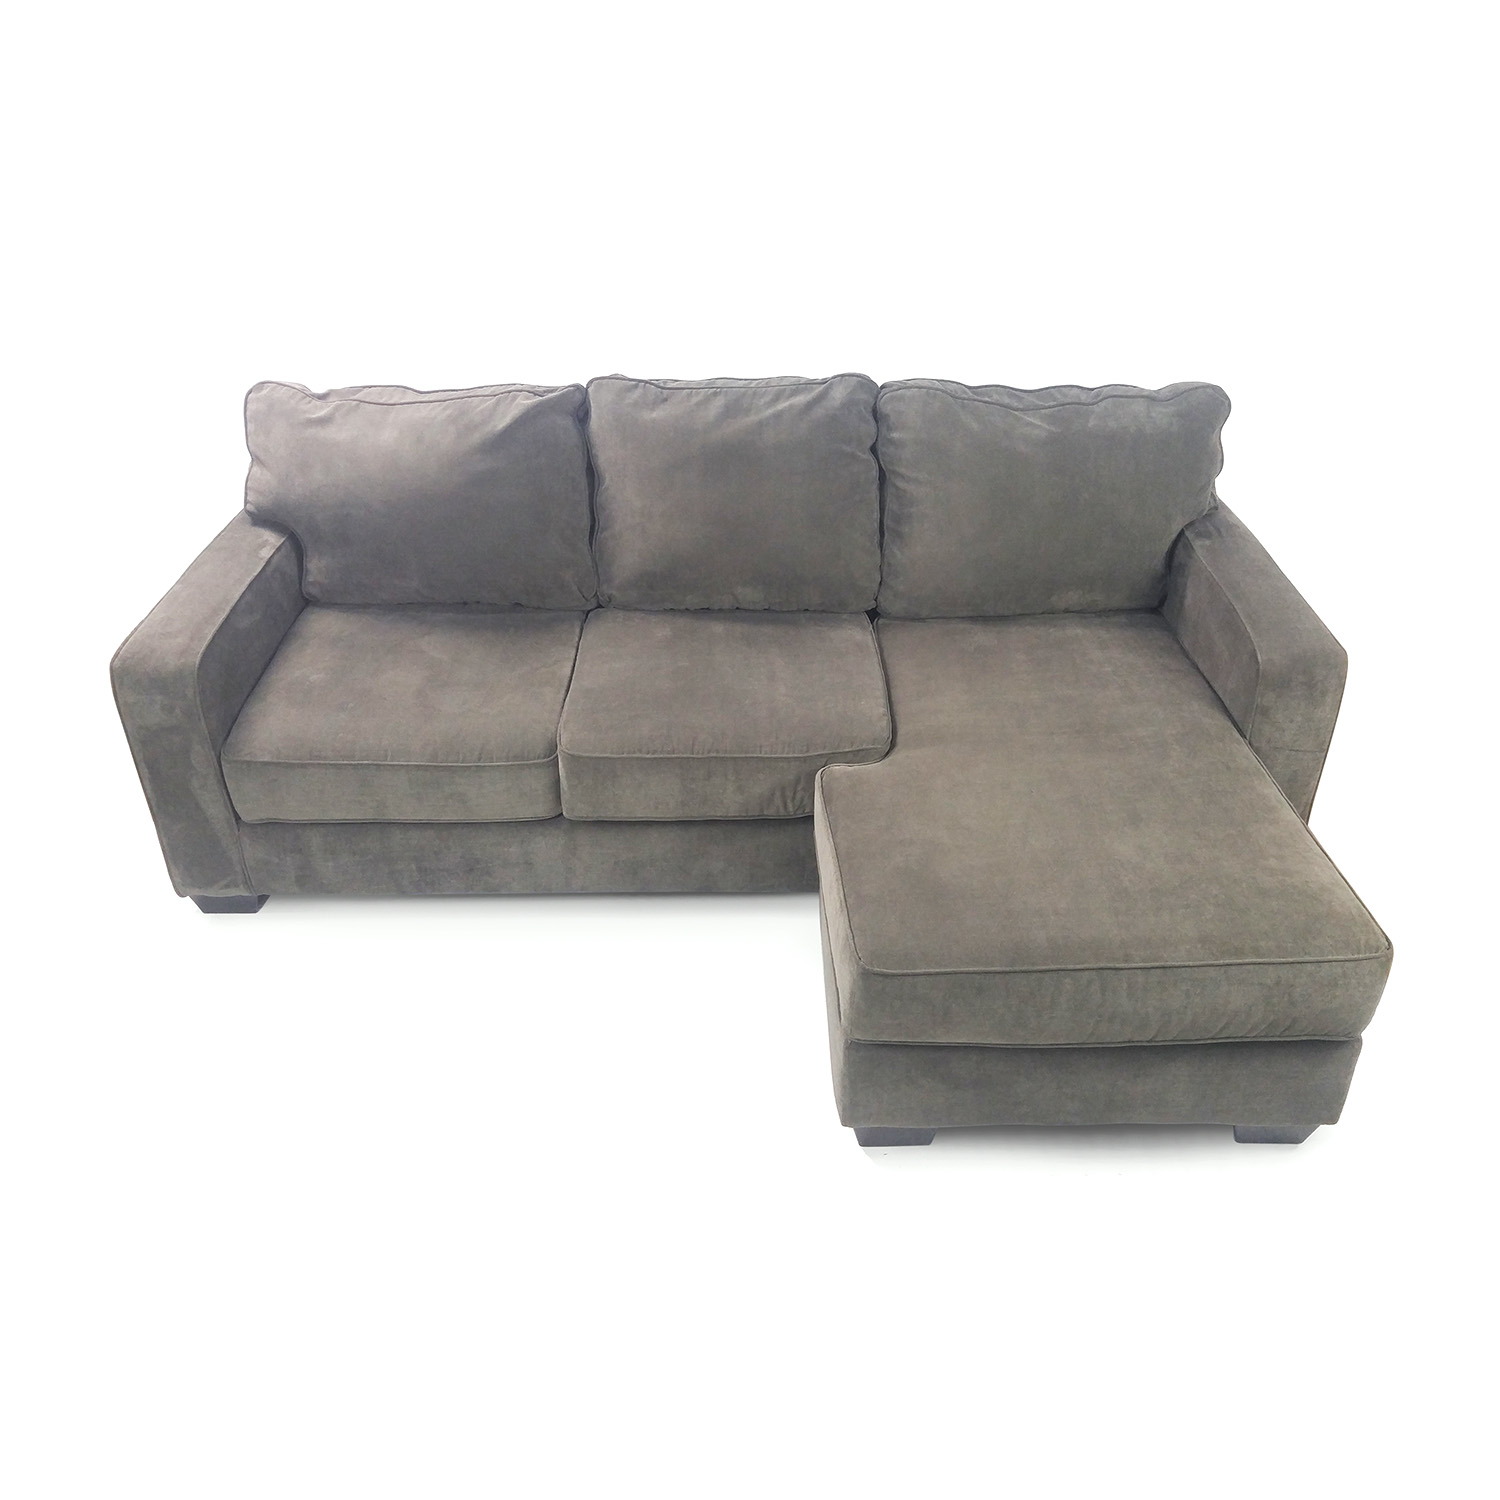 Hodan sofa chaise ashley furniture hodan sofa chaise for Ashley furniture couch with chaise